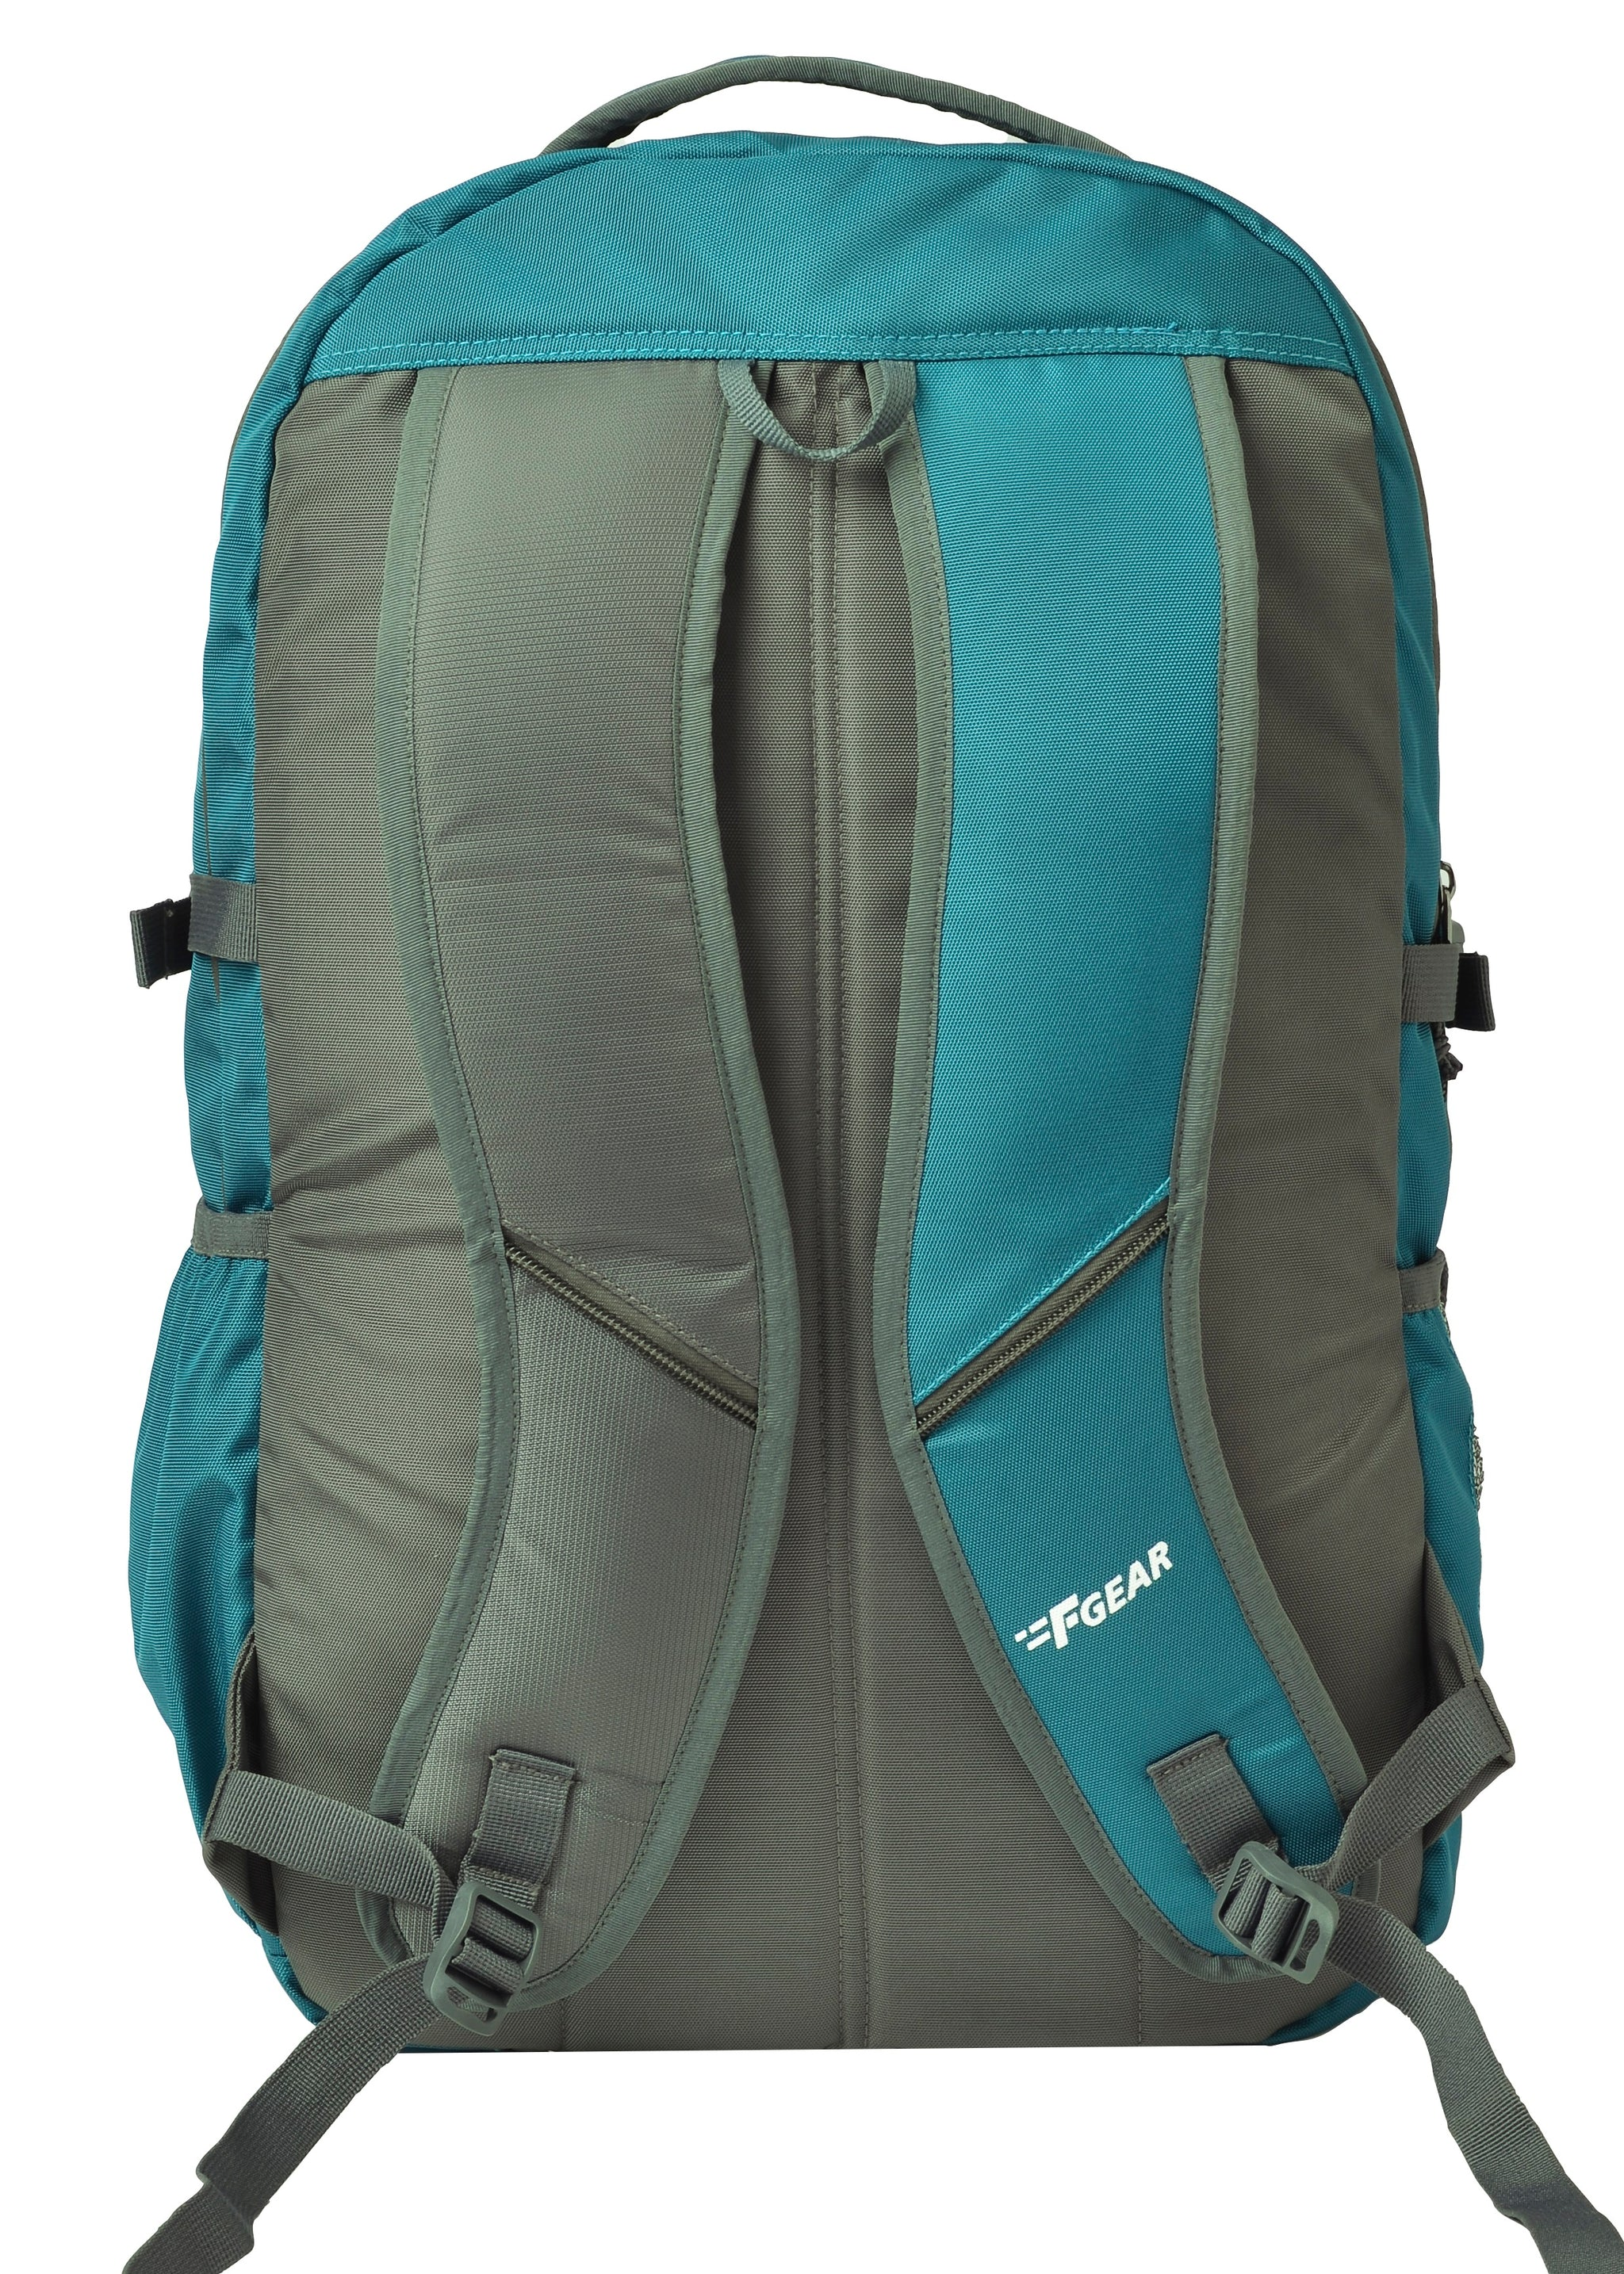 F Gear Blow Laptop Backpack With Rain Cover 32 Liters (Aqua Blue,Grey)